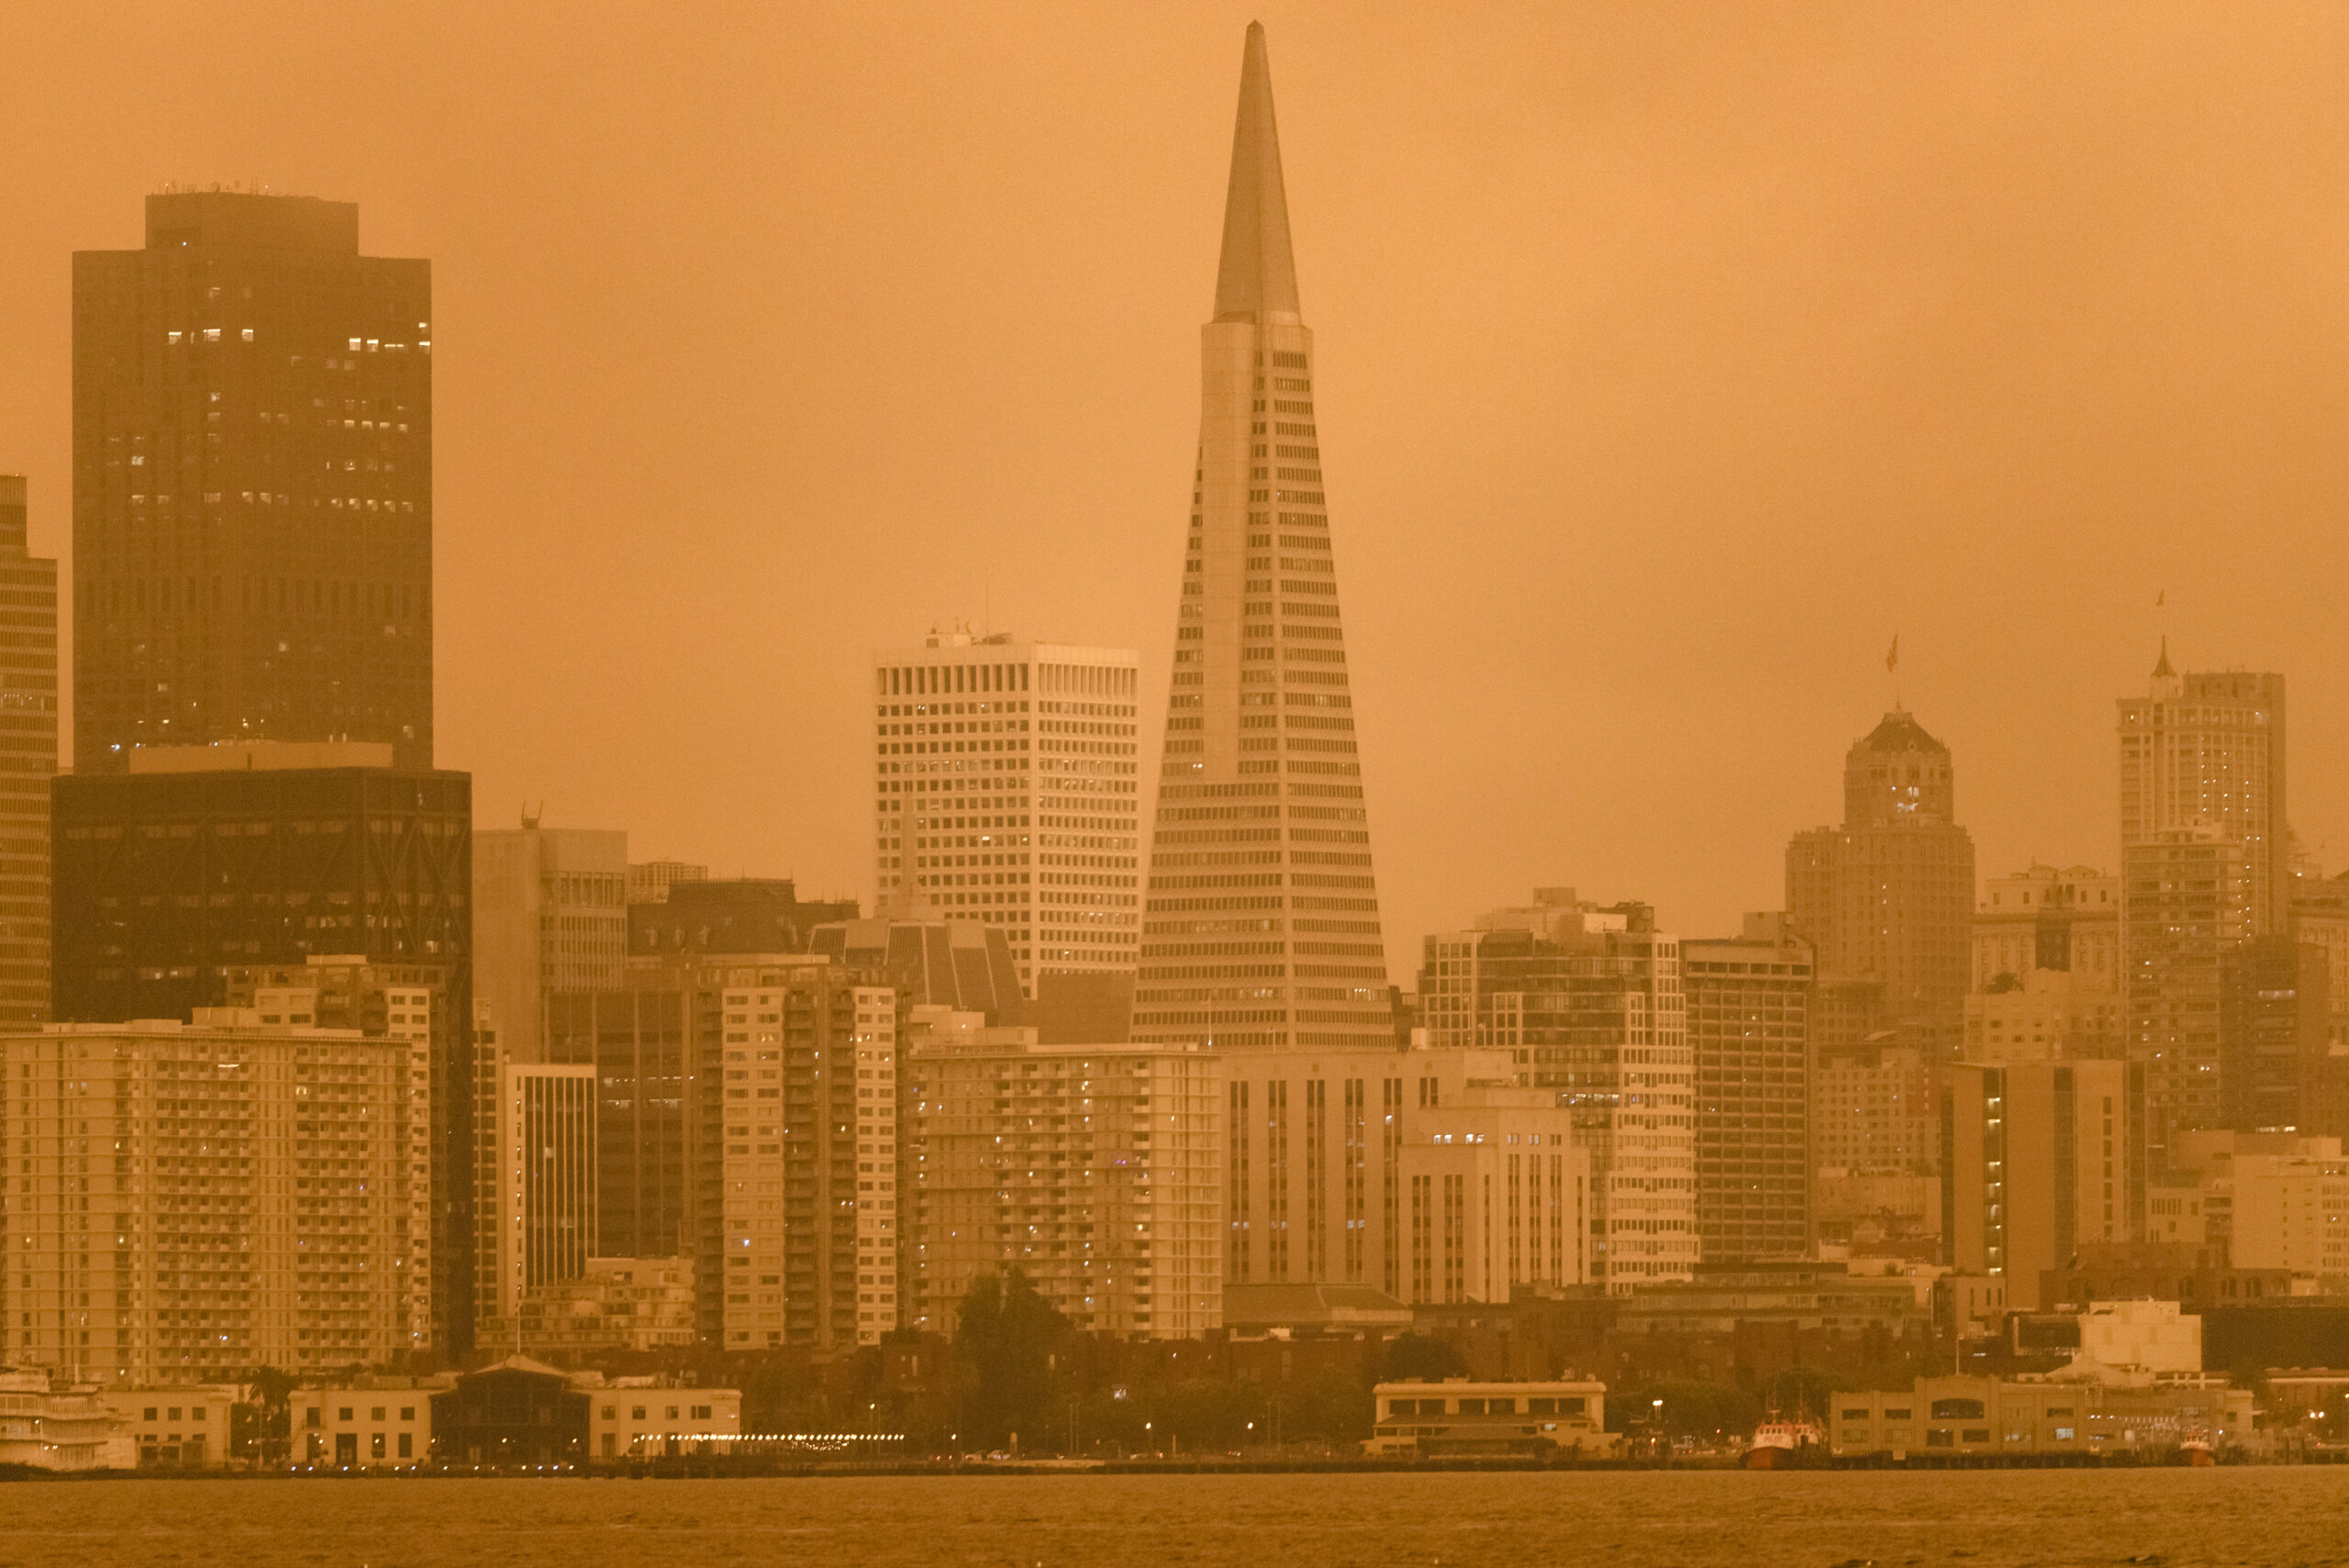 Smoke from California wildfires hangs over the San Francisco skyline in San Francisco, California, on Wednesday, Sept. 9, 2020. Credit: Michael Short/Bloomberg via Getty Images